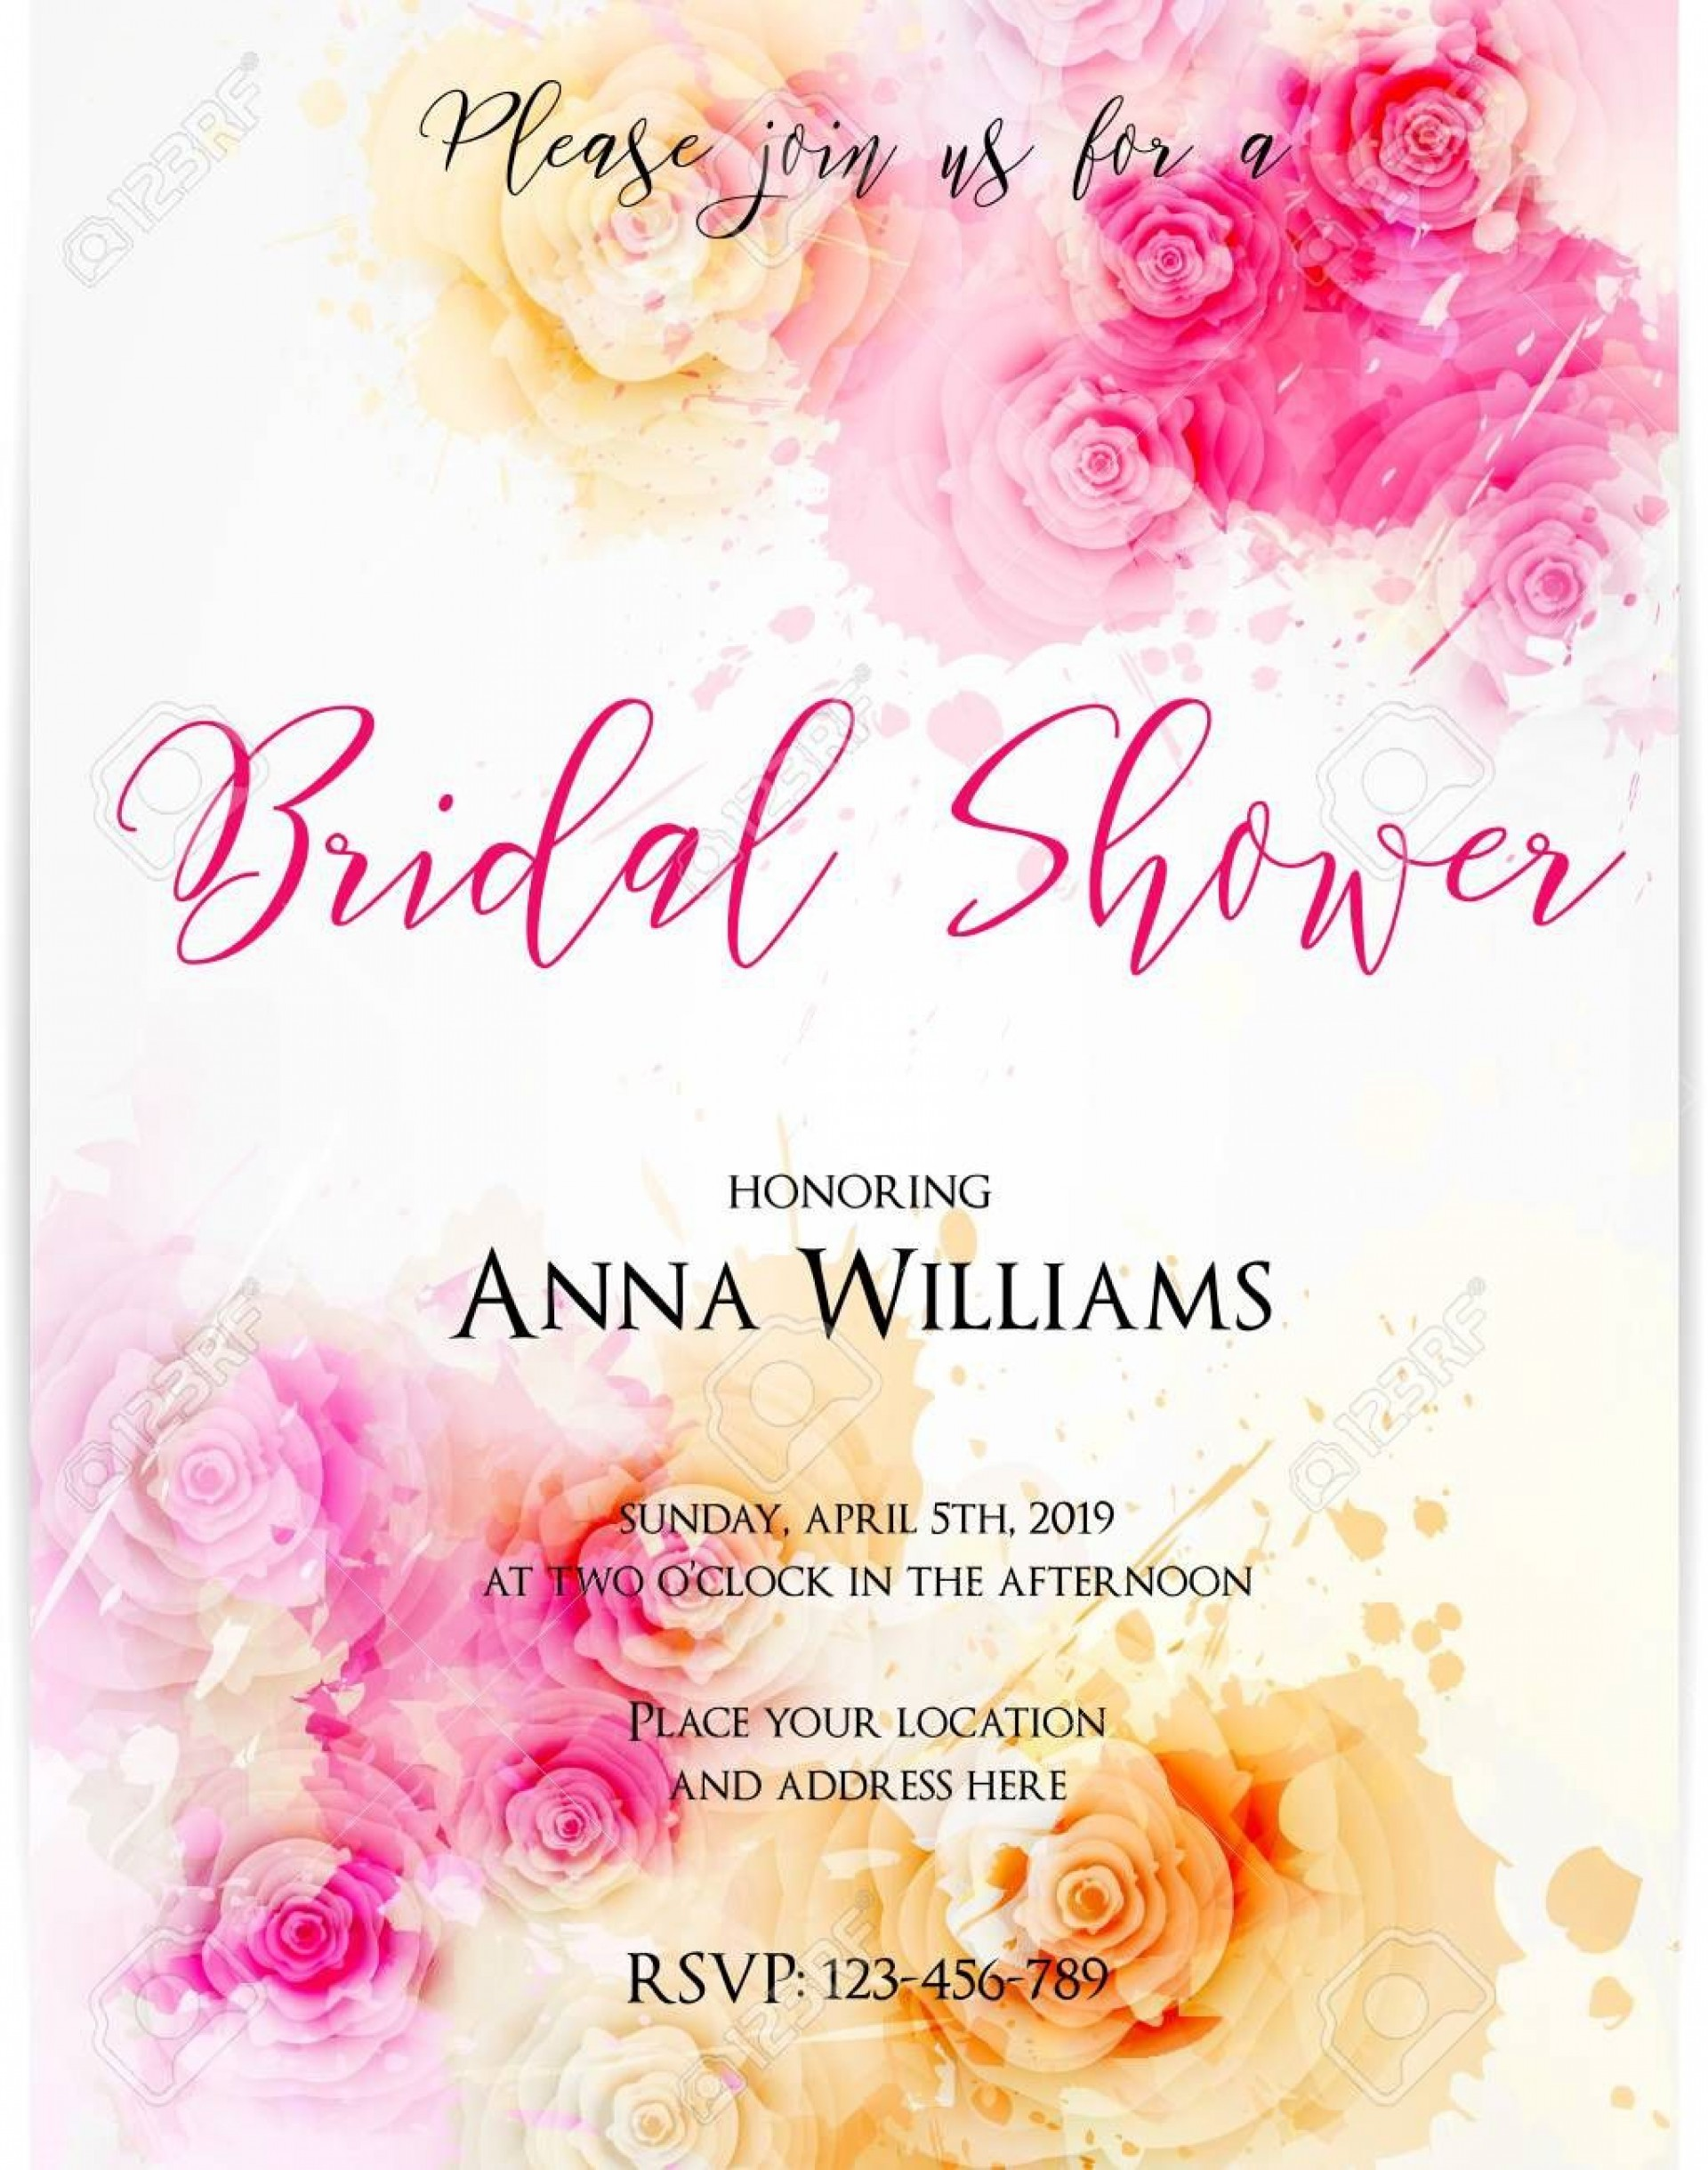 004 Excellent Wedding Shower Invitation Template Image  Templates Bridal Pinterest Microsoft Word Free For1920